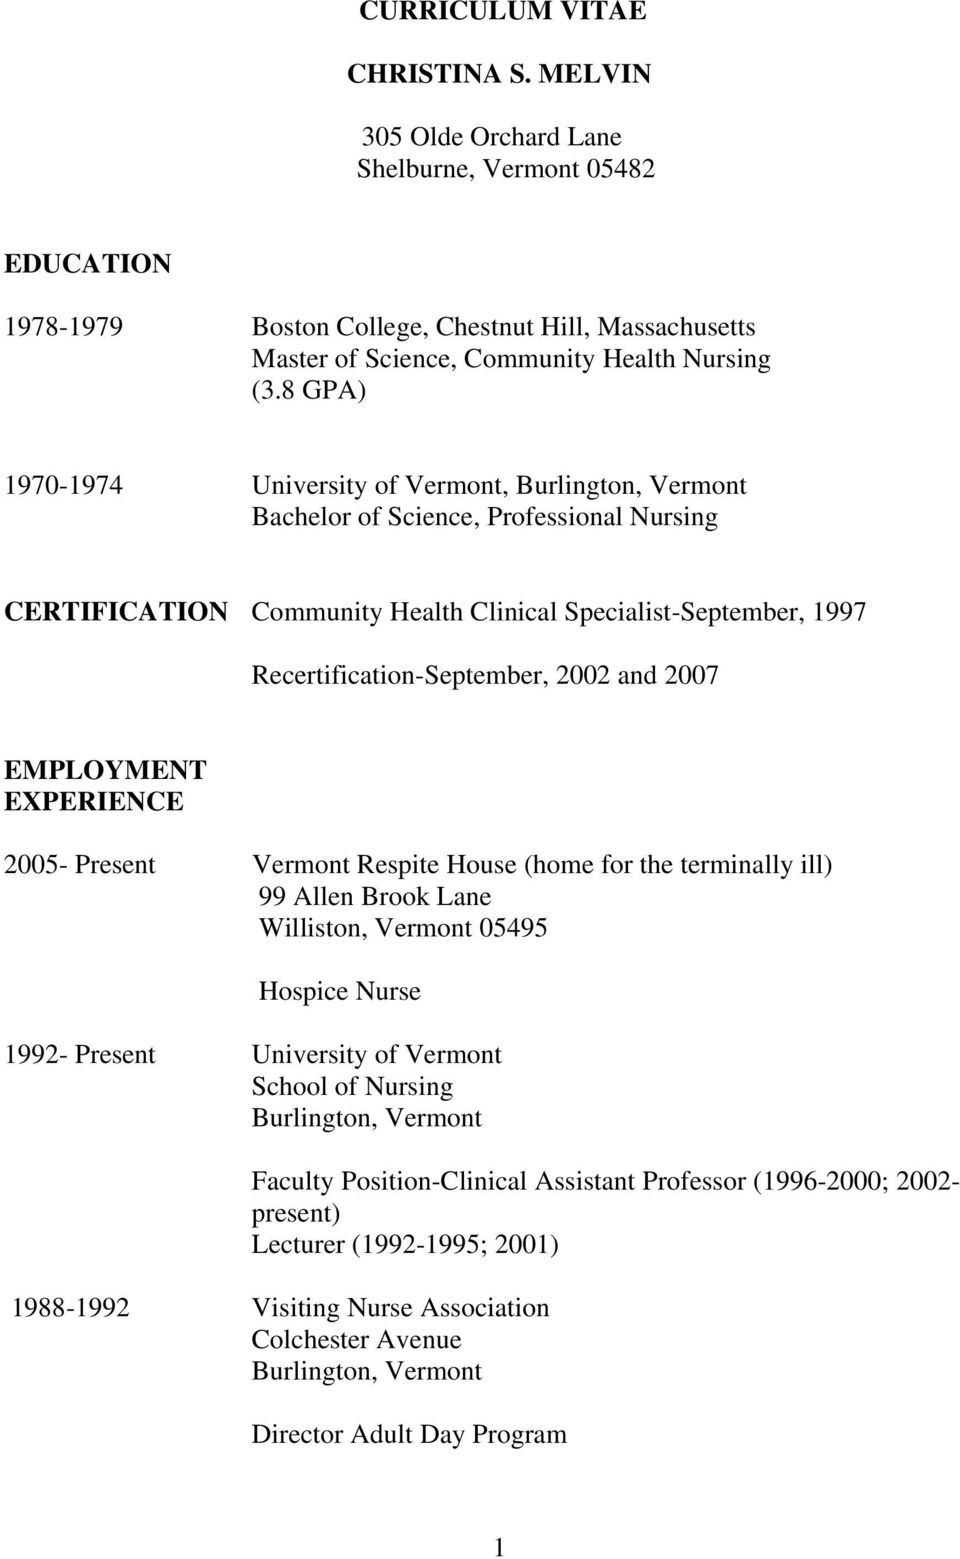 2002 and 2007 EMPLOYMENT EXPERIENCE 2005- Present Vermont Respite House (home for the terminally ill) 99 Allen Brook Lane Williston, Vermont 05495 Hospice Nurse 1992- Present University of Vermont